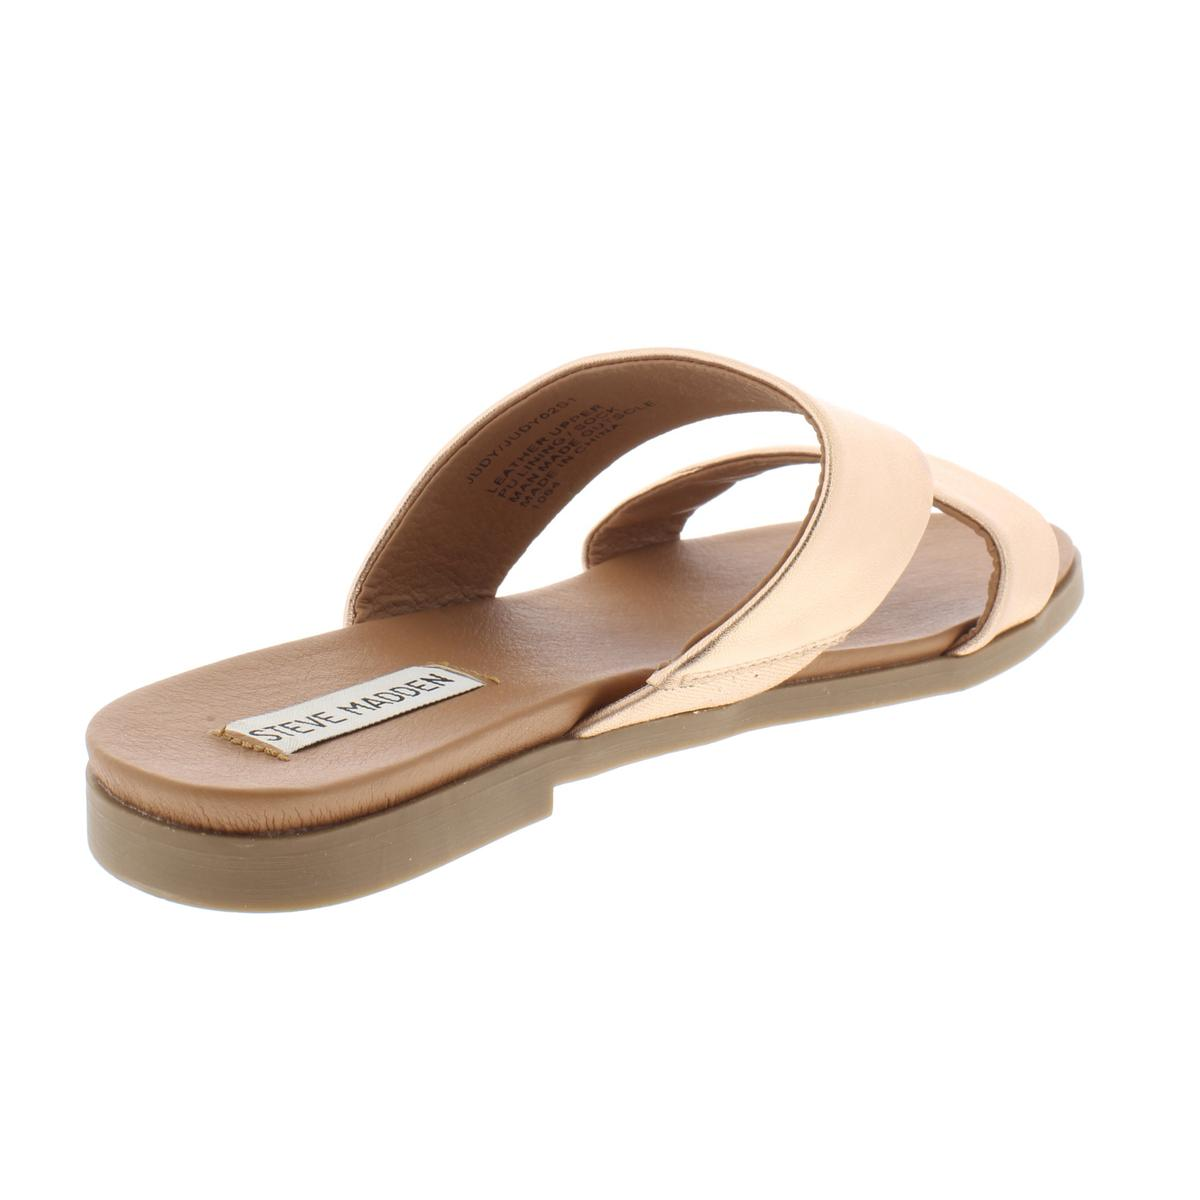 Steve-Madden-Womens-Judy-Leather-Sandals-Flats-Shoes-BHFO-7653 thumbnail 8